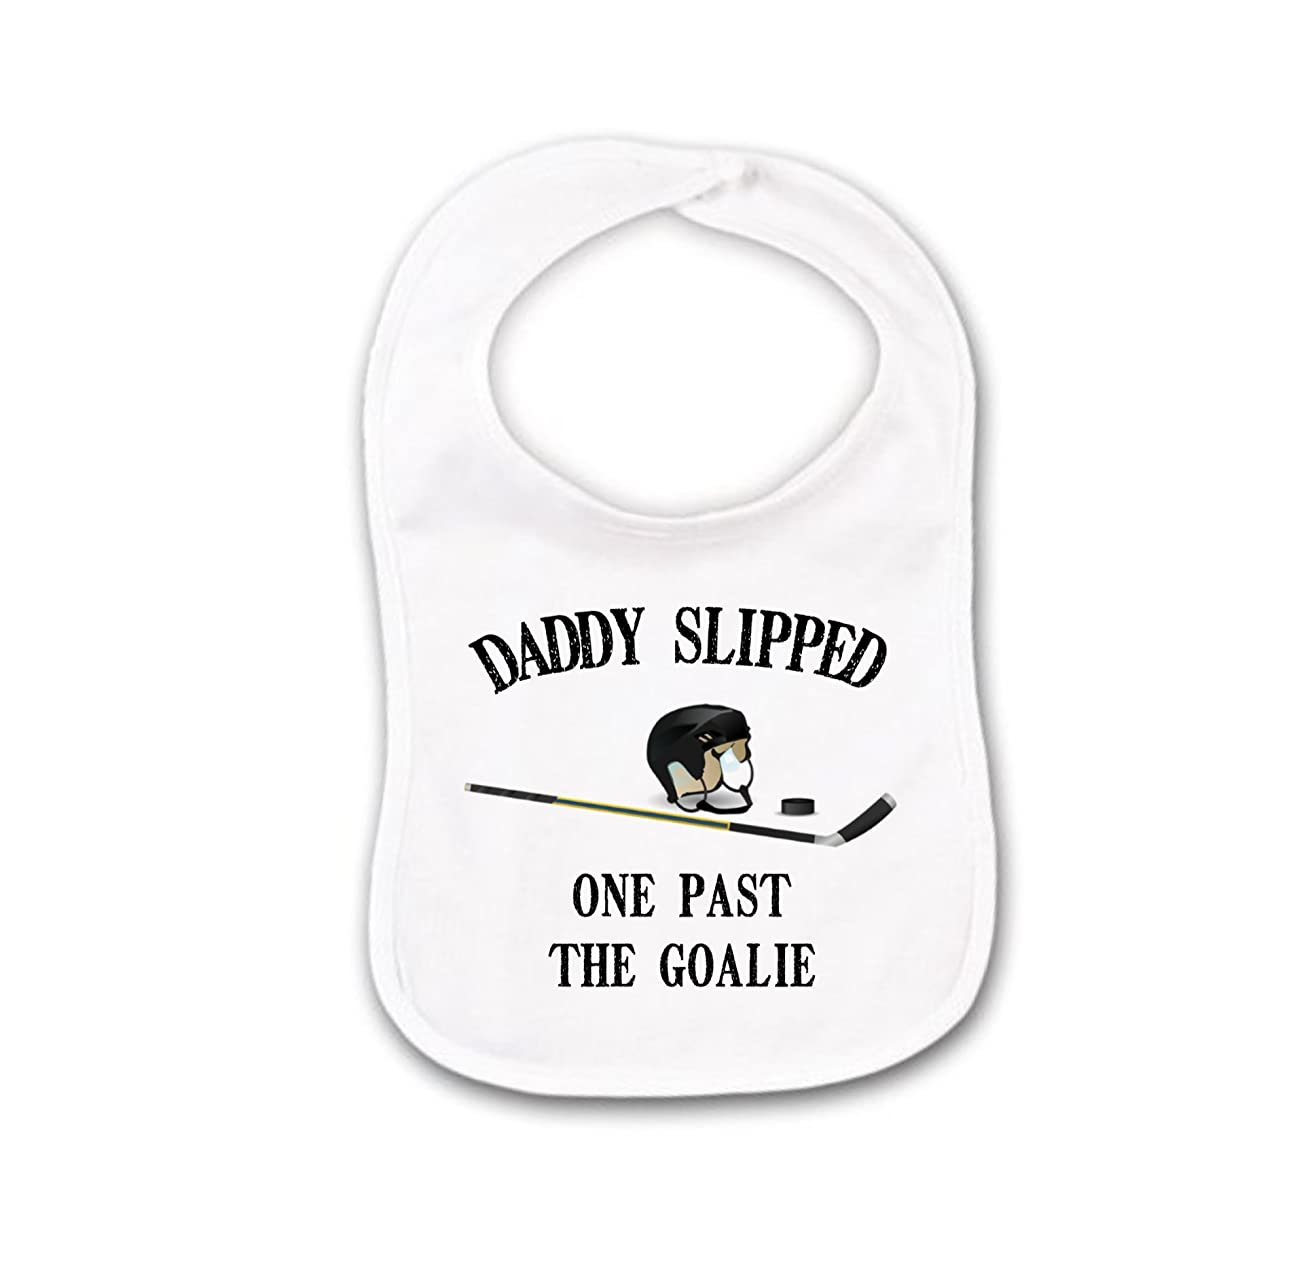 Funny Daddy Hockey Baby Bib or Burp Cloth For Gender Neutral Unisex Girl or Boy